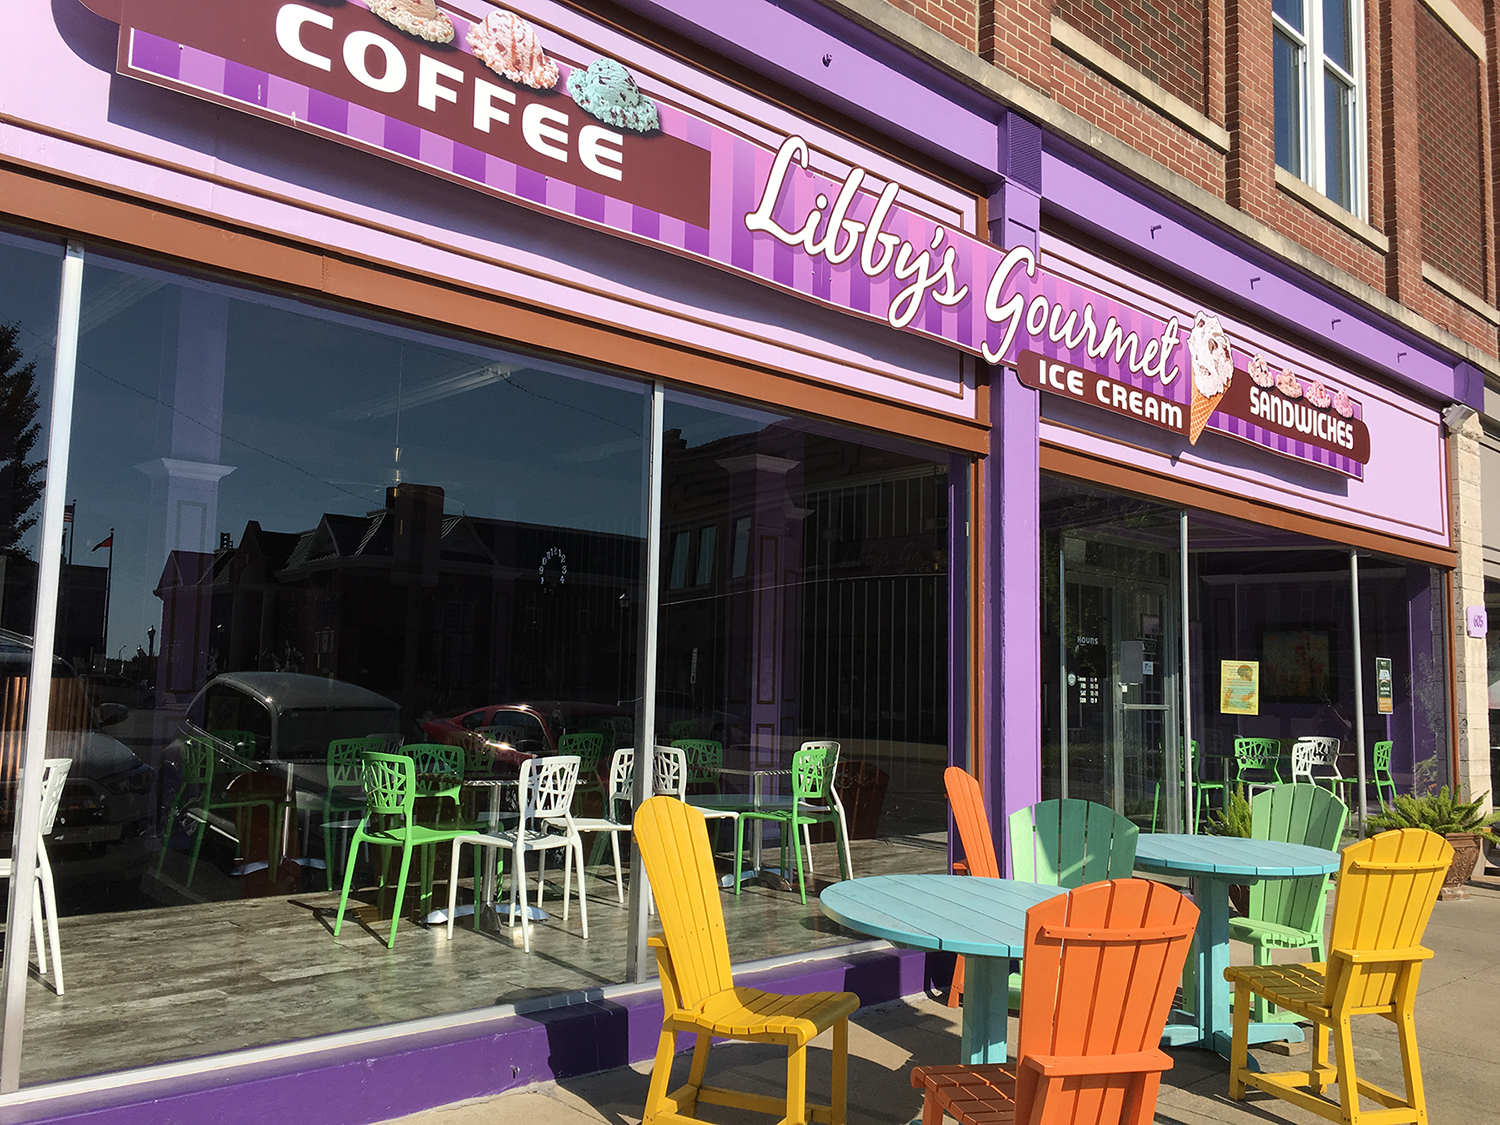 Sources Say Libby's Gourmet Ice Cream in Jasper Will Not Re-Open For the Season, Building for Sale